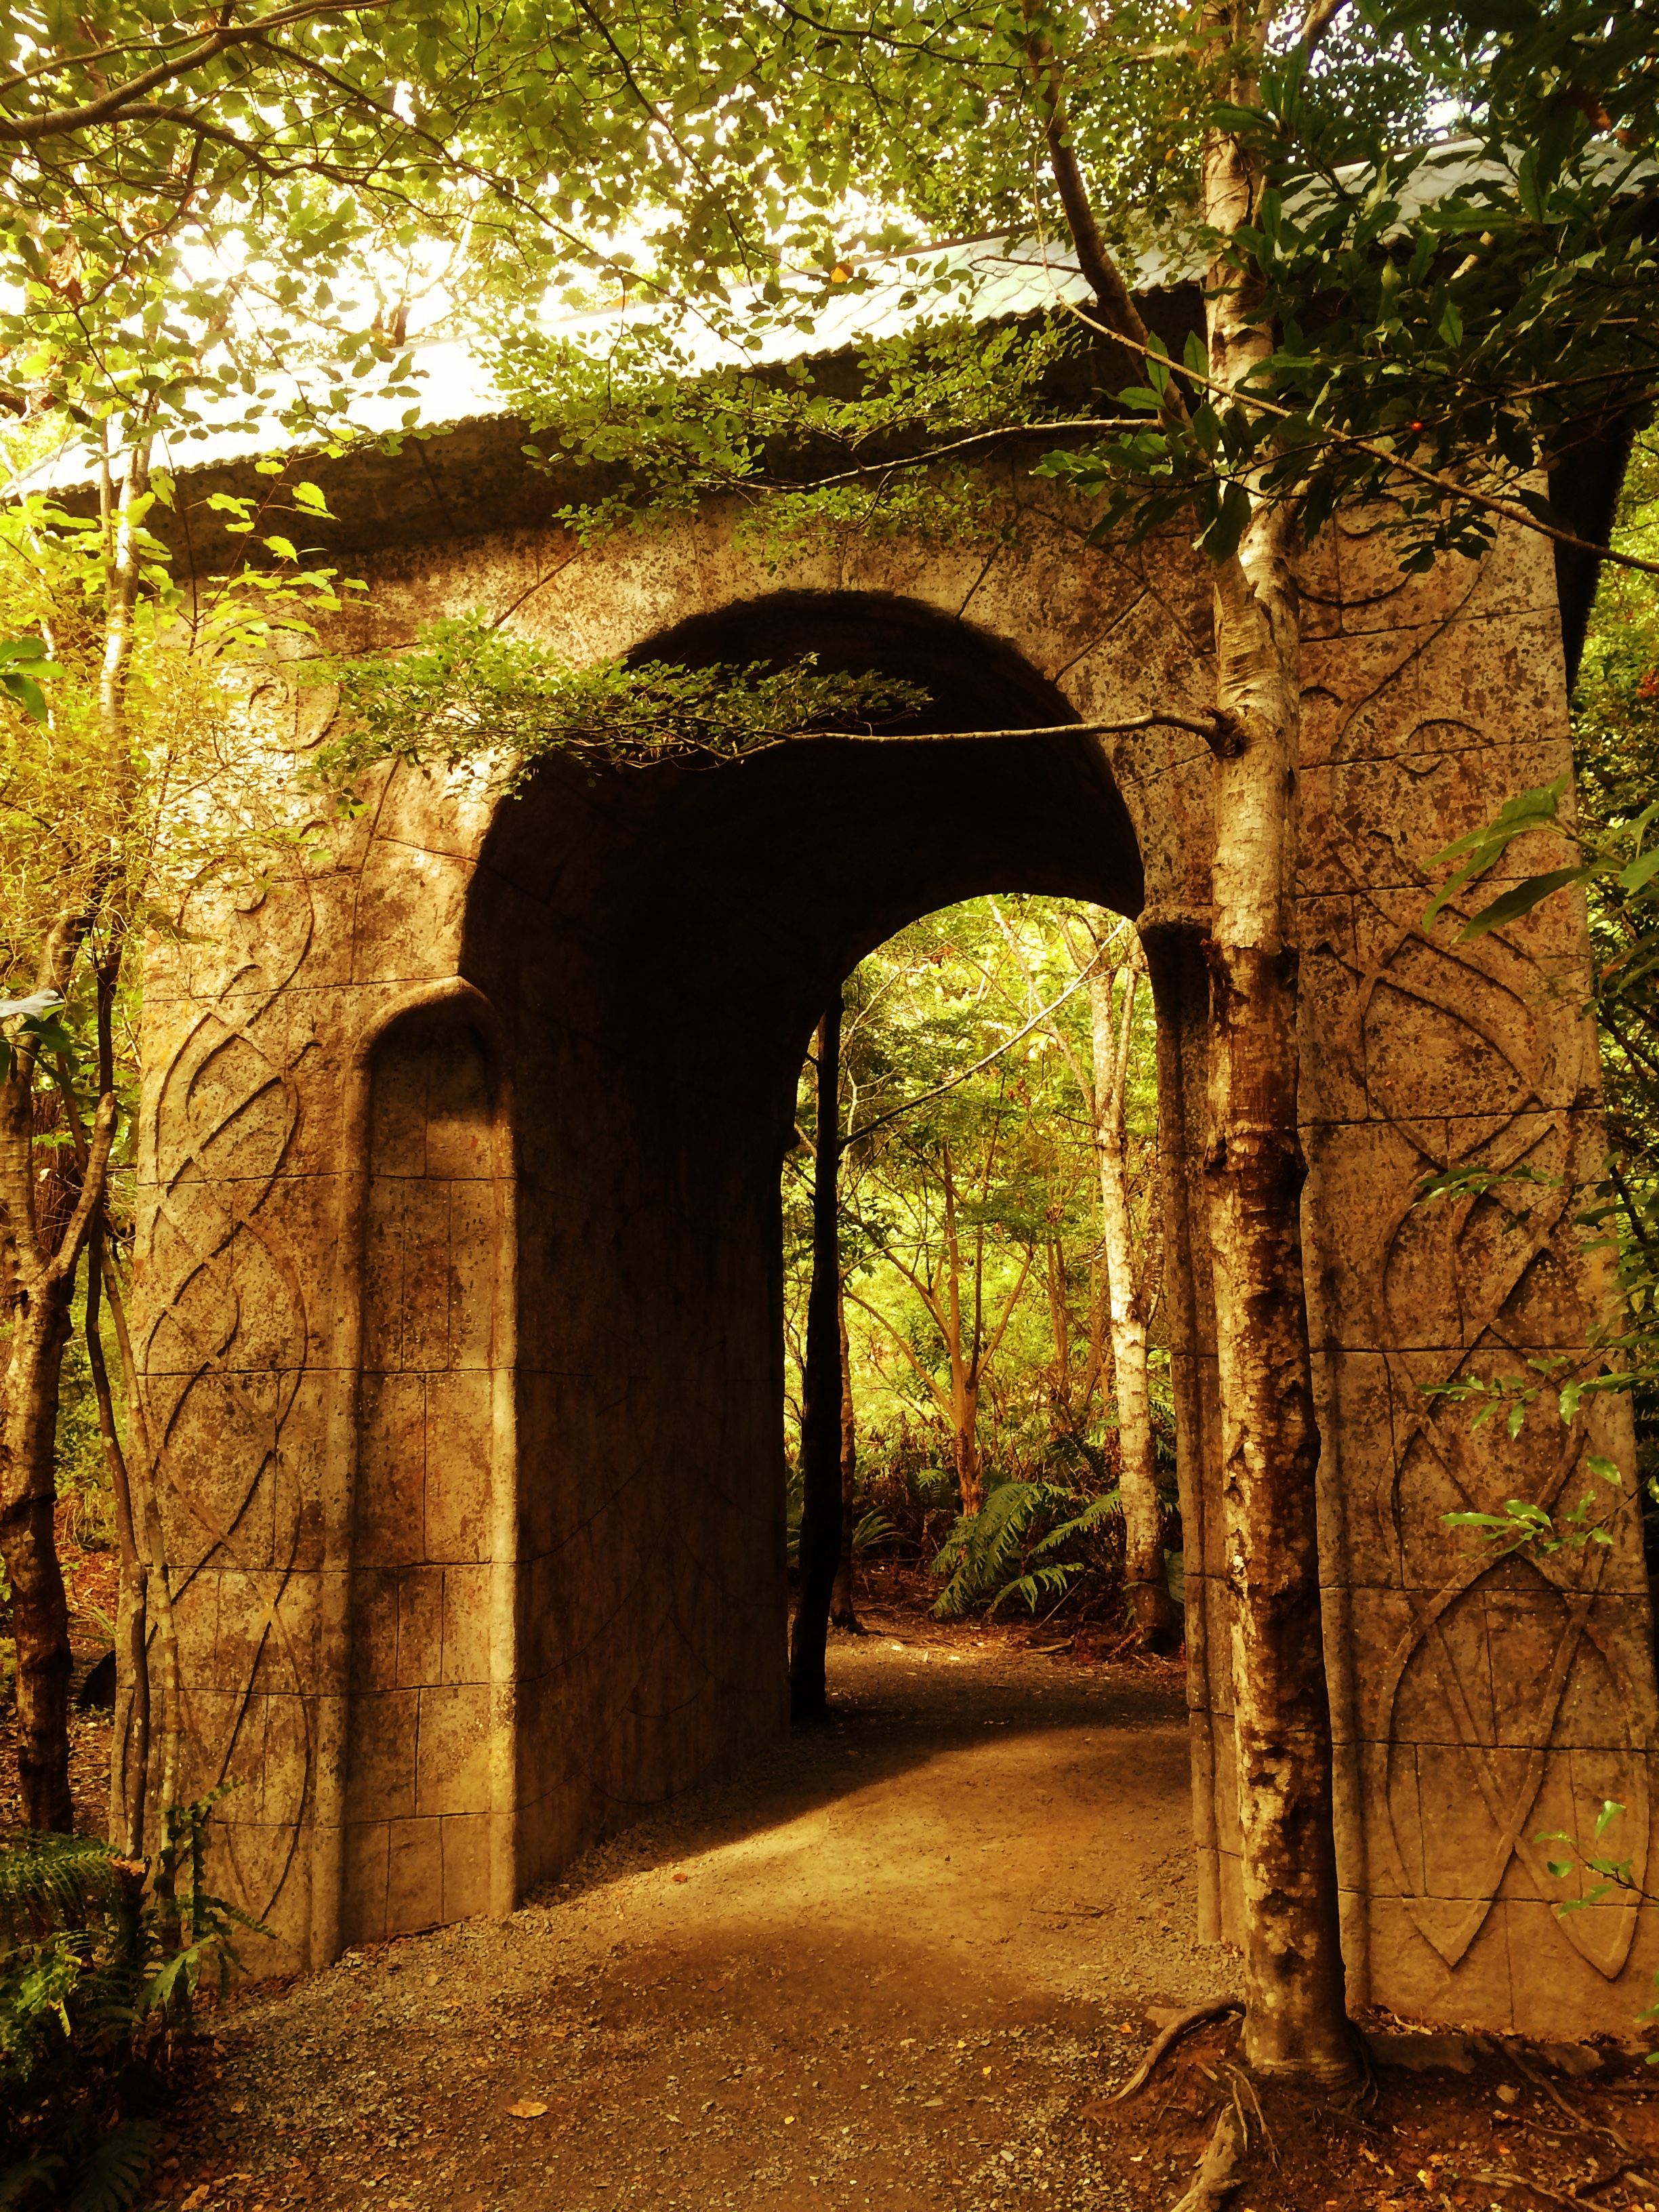 Rivendell gate